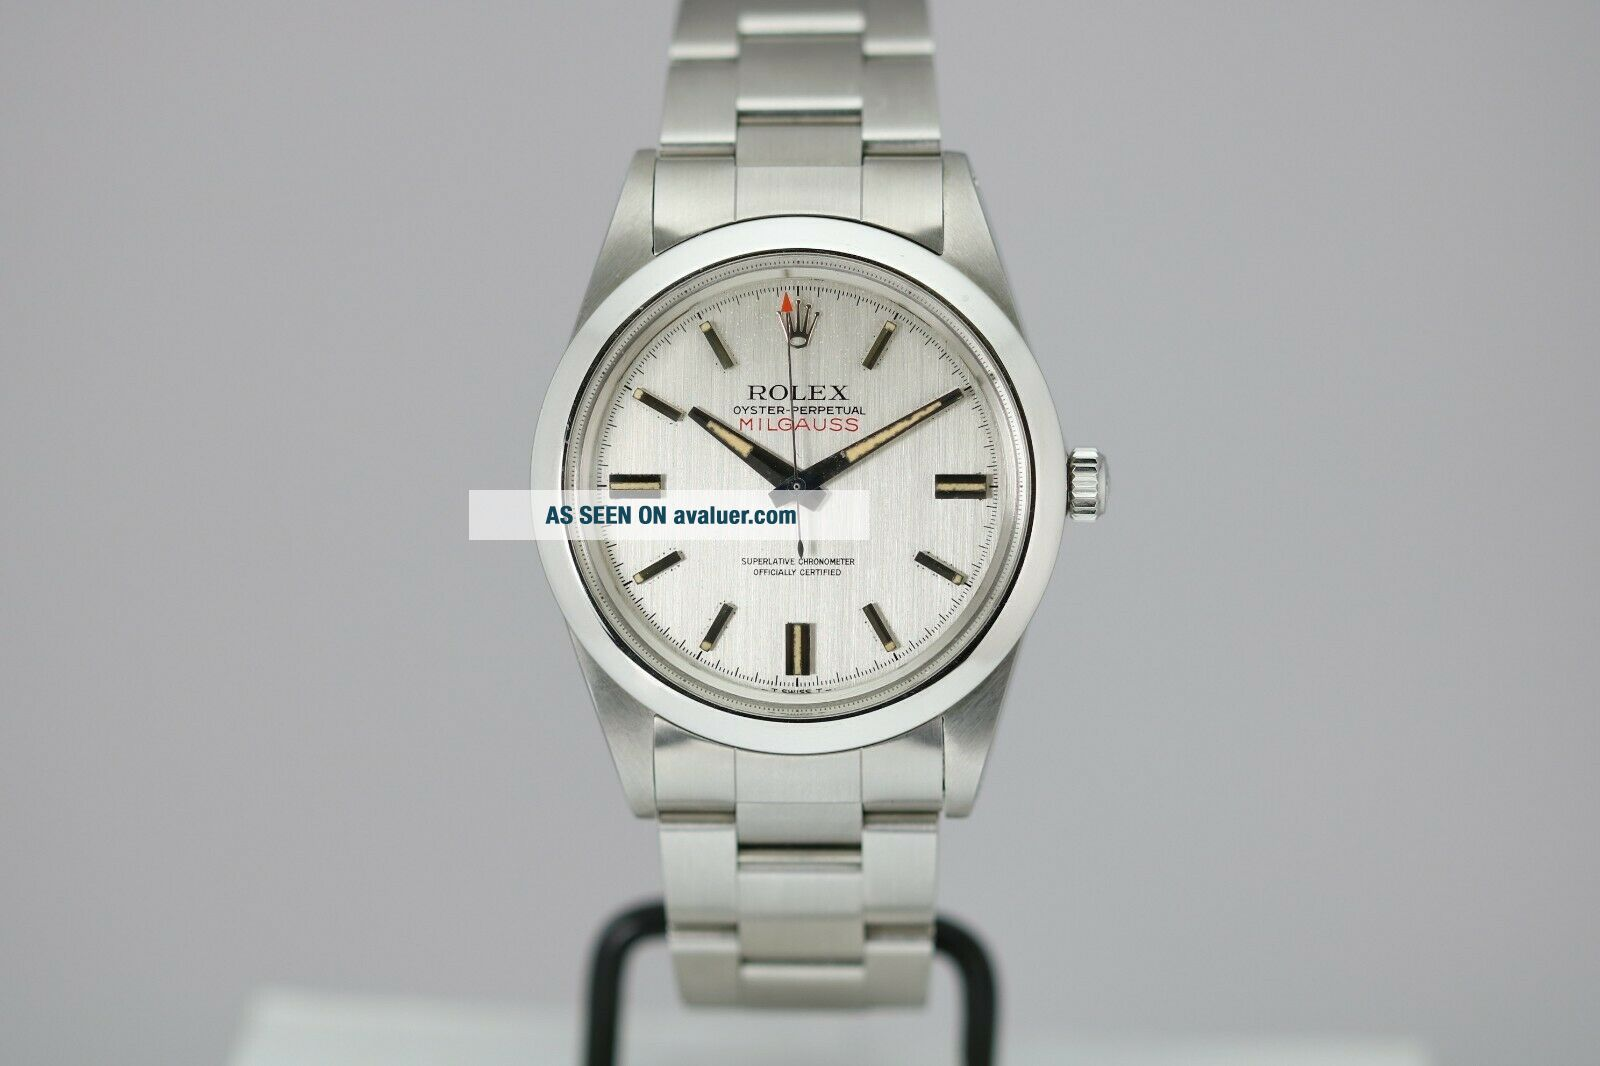 Vintage Rolex Milgauss Automatic Silver Dial Watch Ref 1019 Circa 1960s